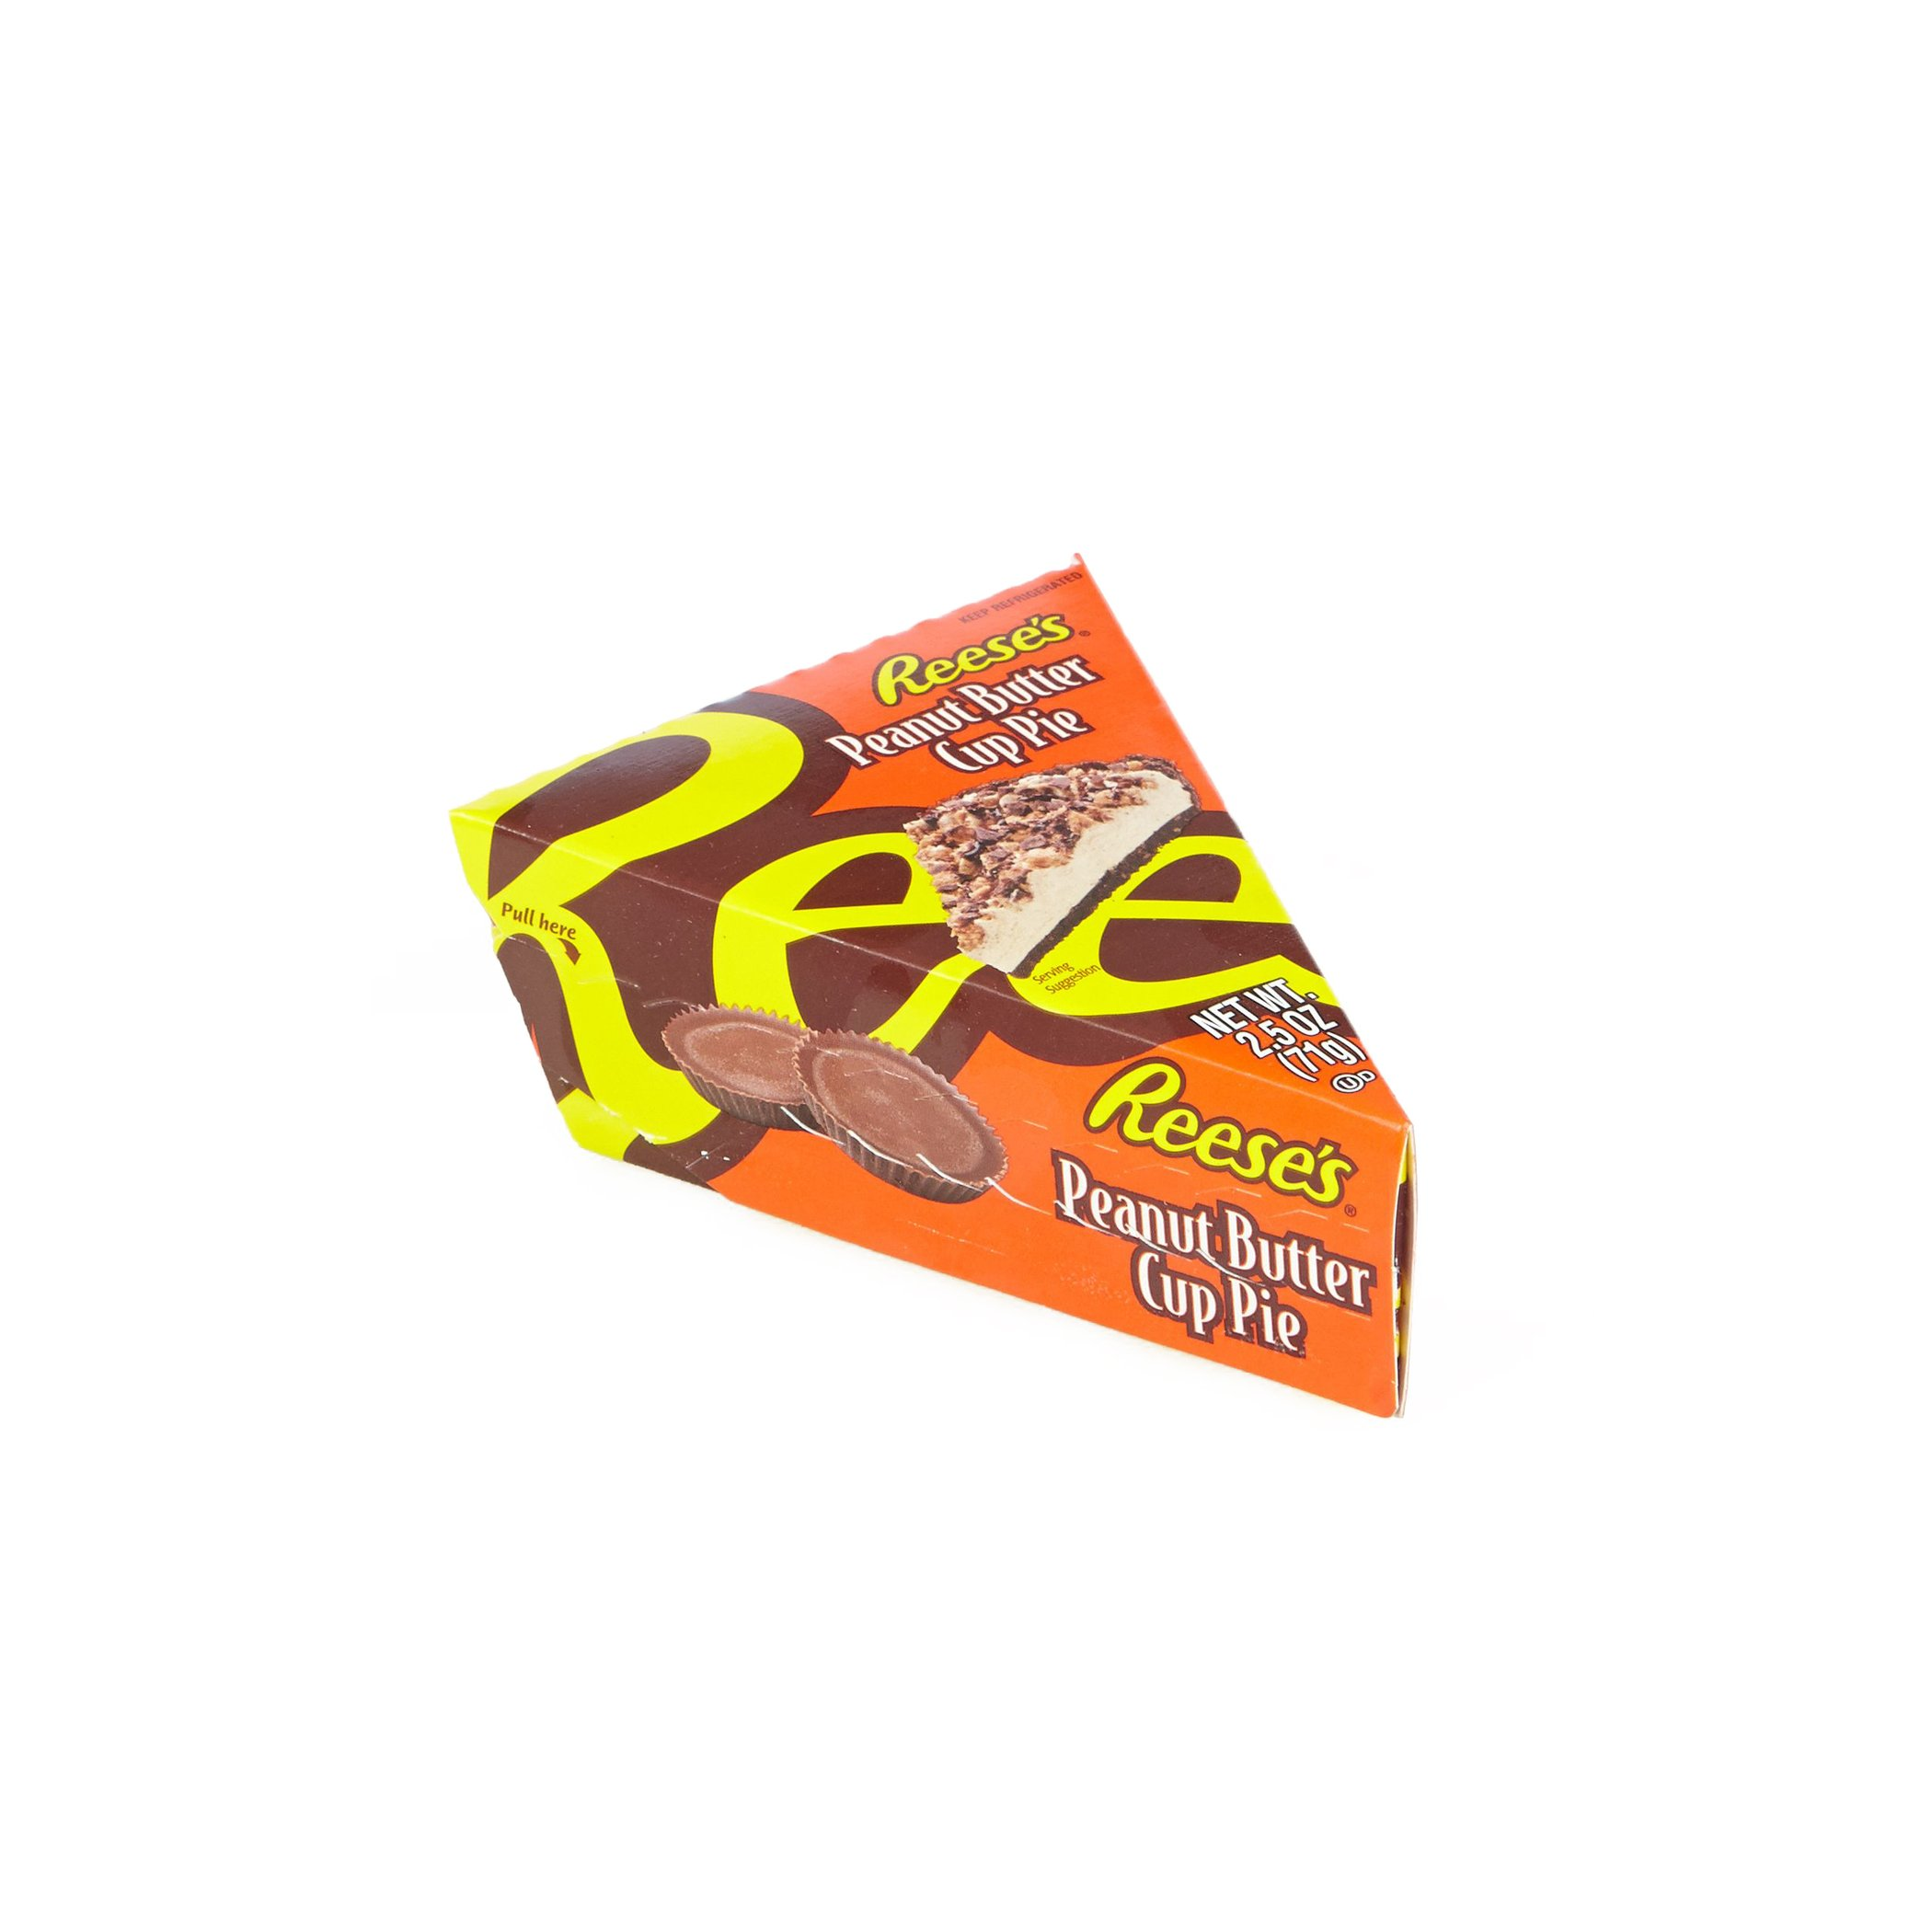 Reese's Peanut Butter Cup Pie Slice, 2.5 oz., (Pack of 24)